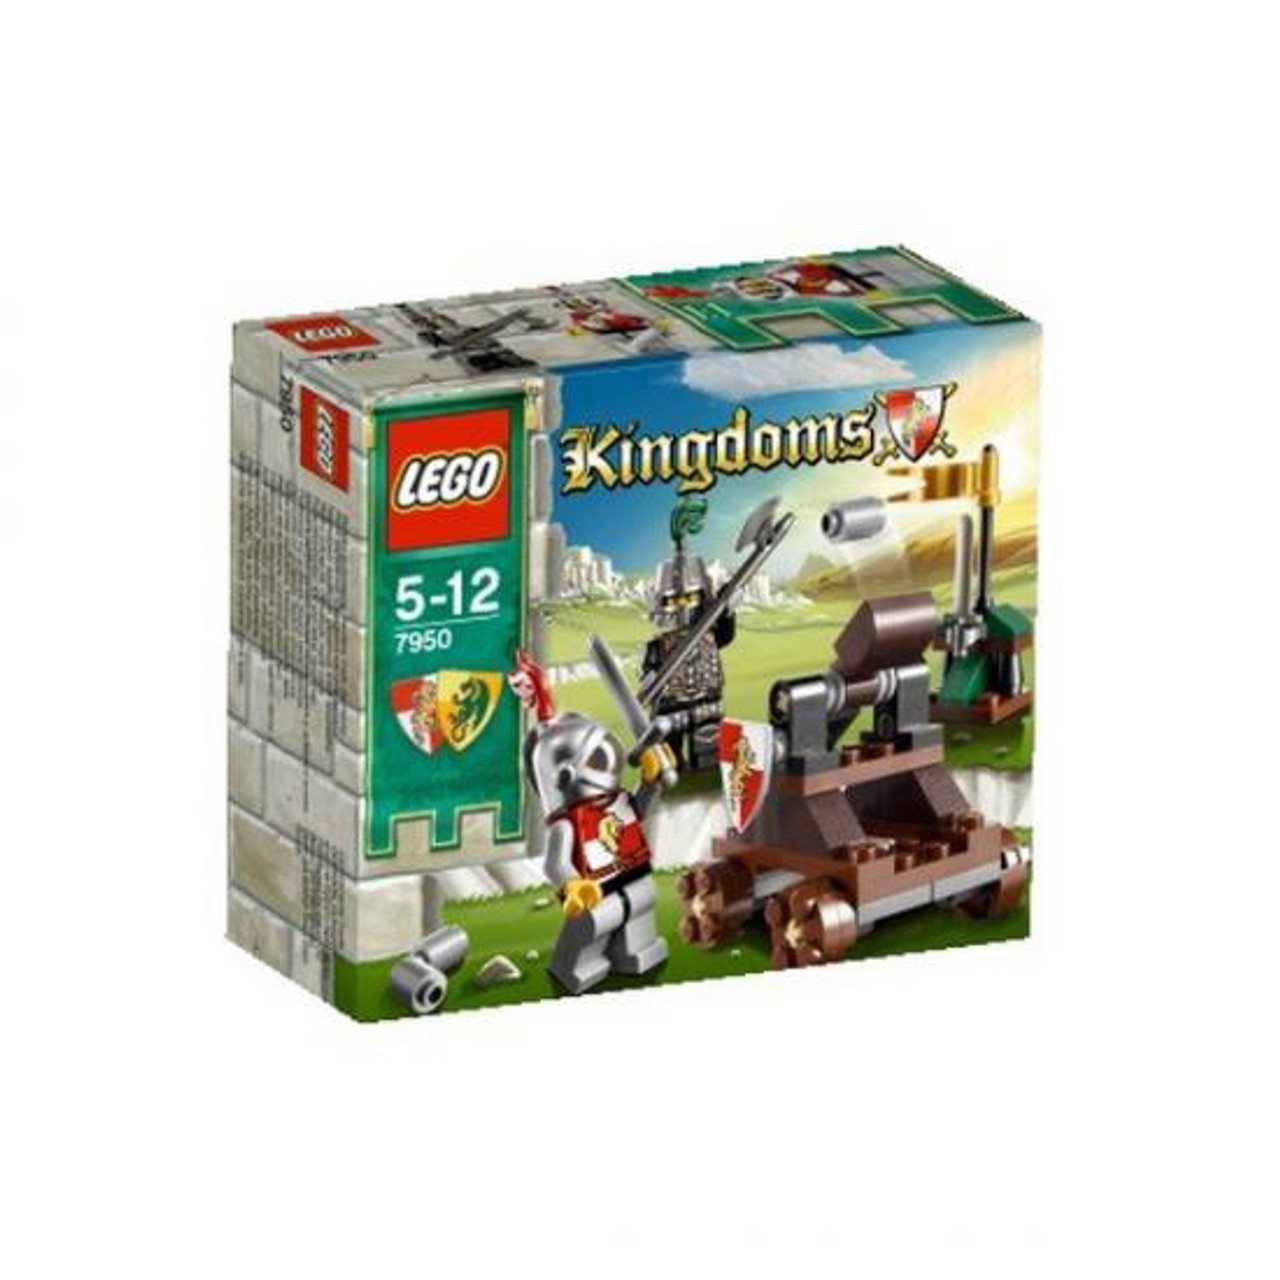 LEGO Kingdoms Knight's Showdown Set #7950